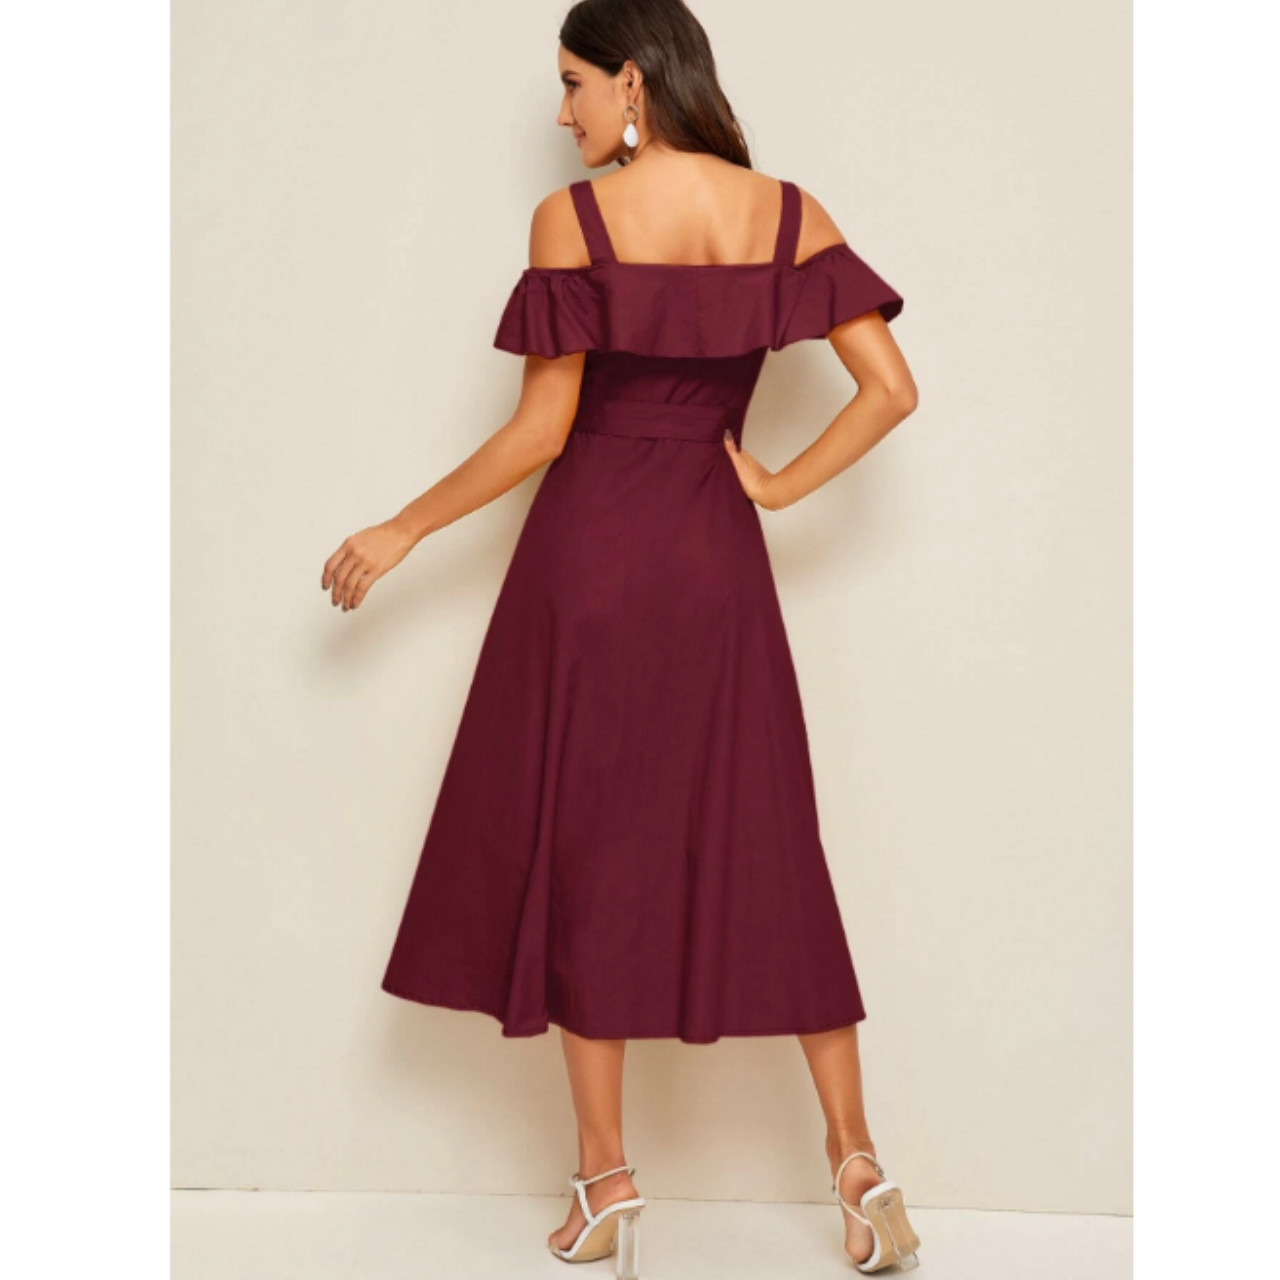 Flounce foldover button front self belted dress l